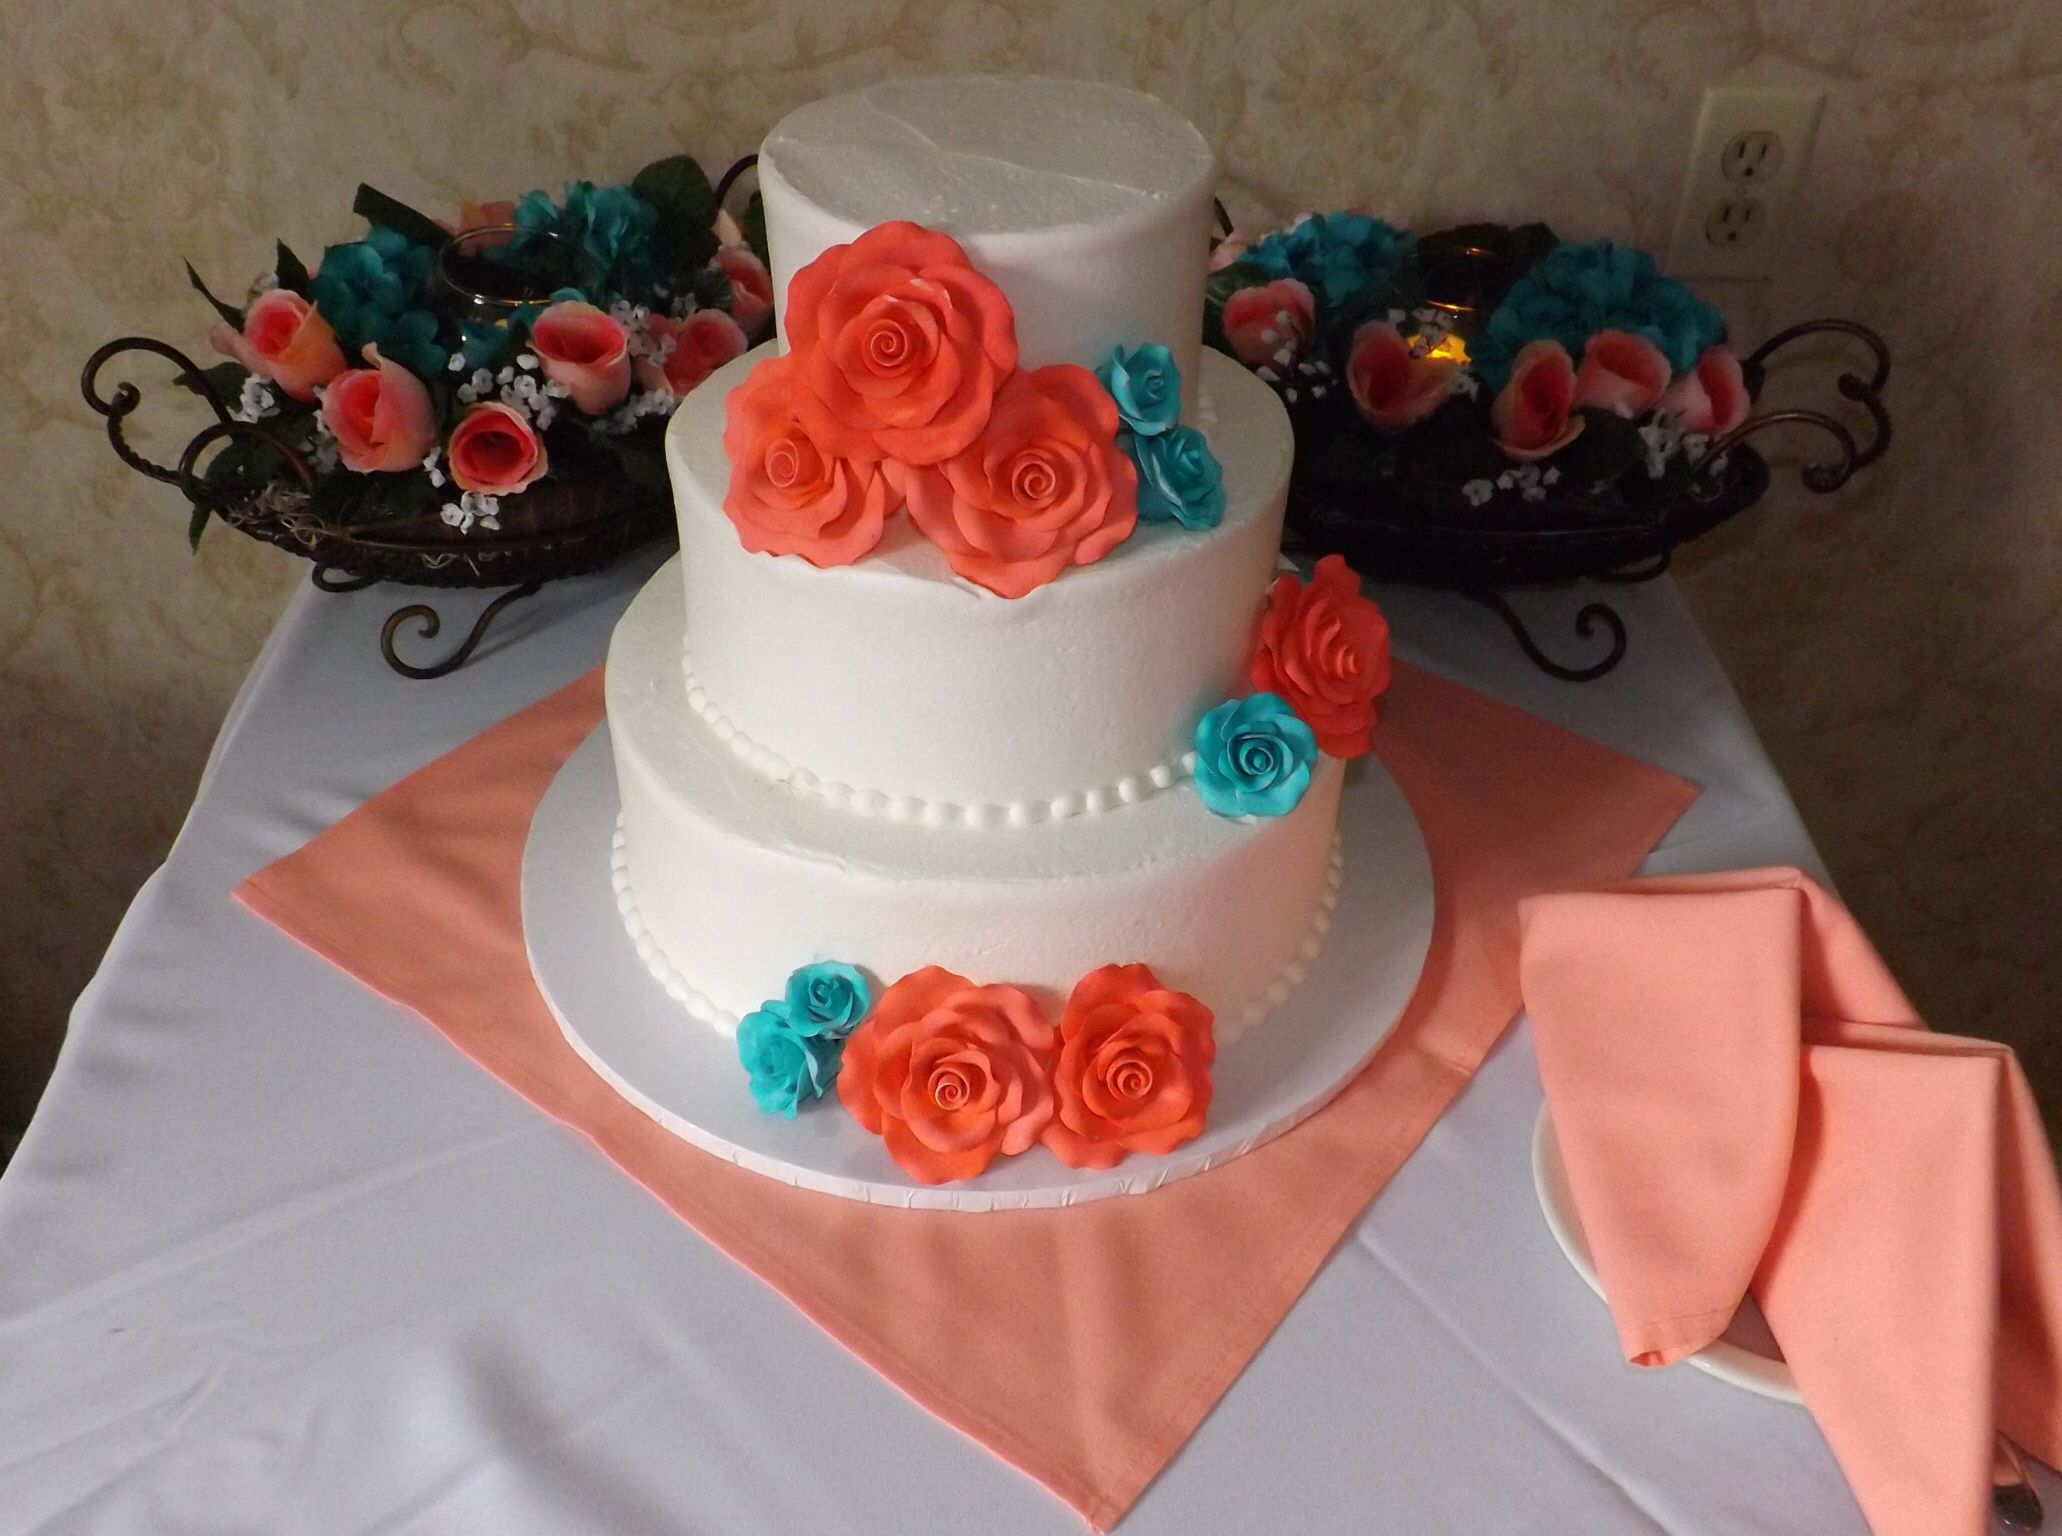 Coral and teal wedding cake | Coral and Teal Weddings | Pinterest ...